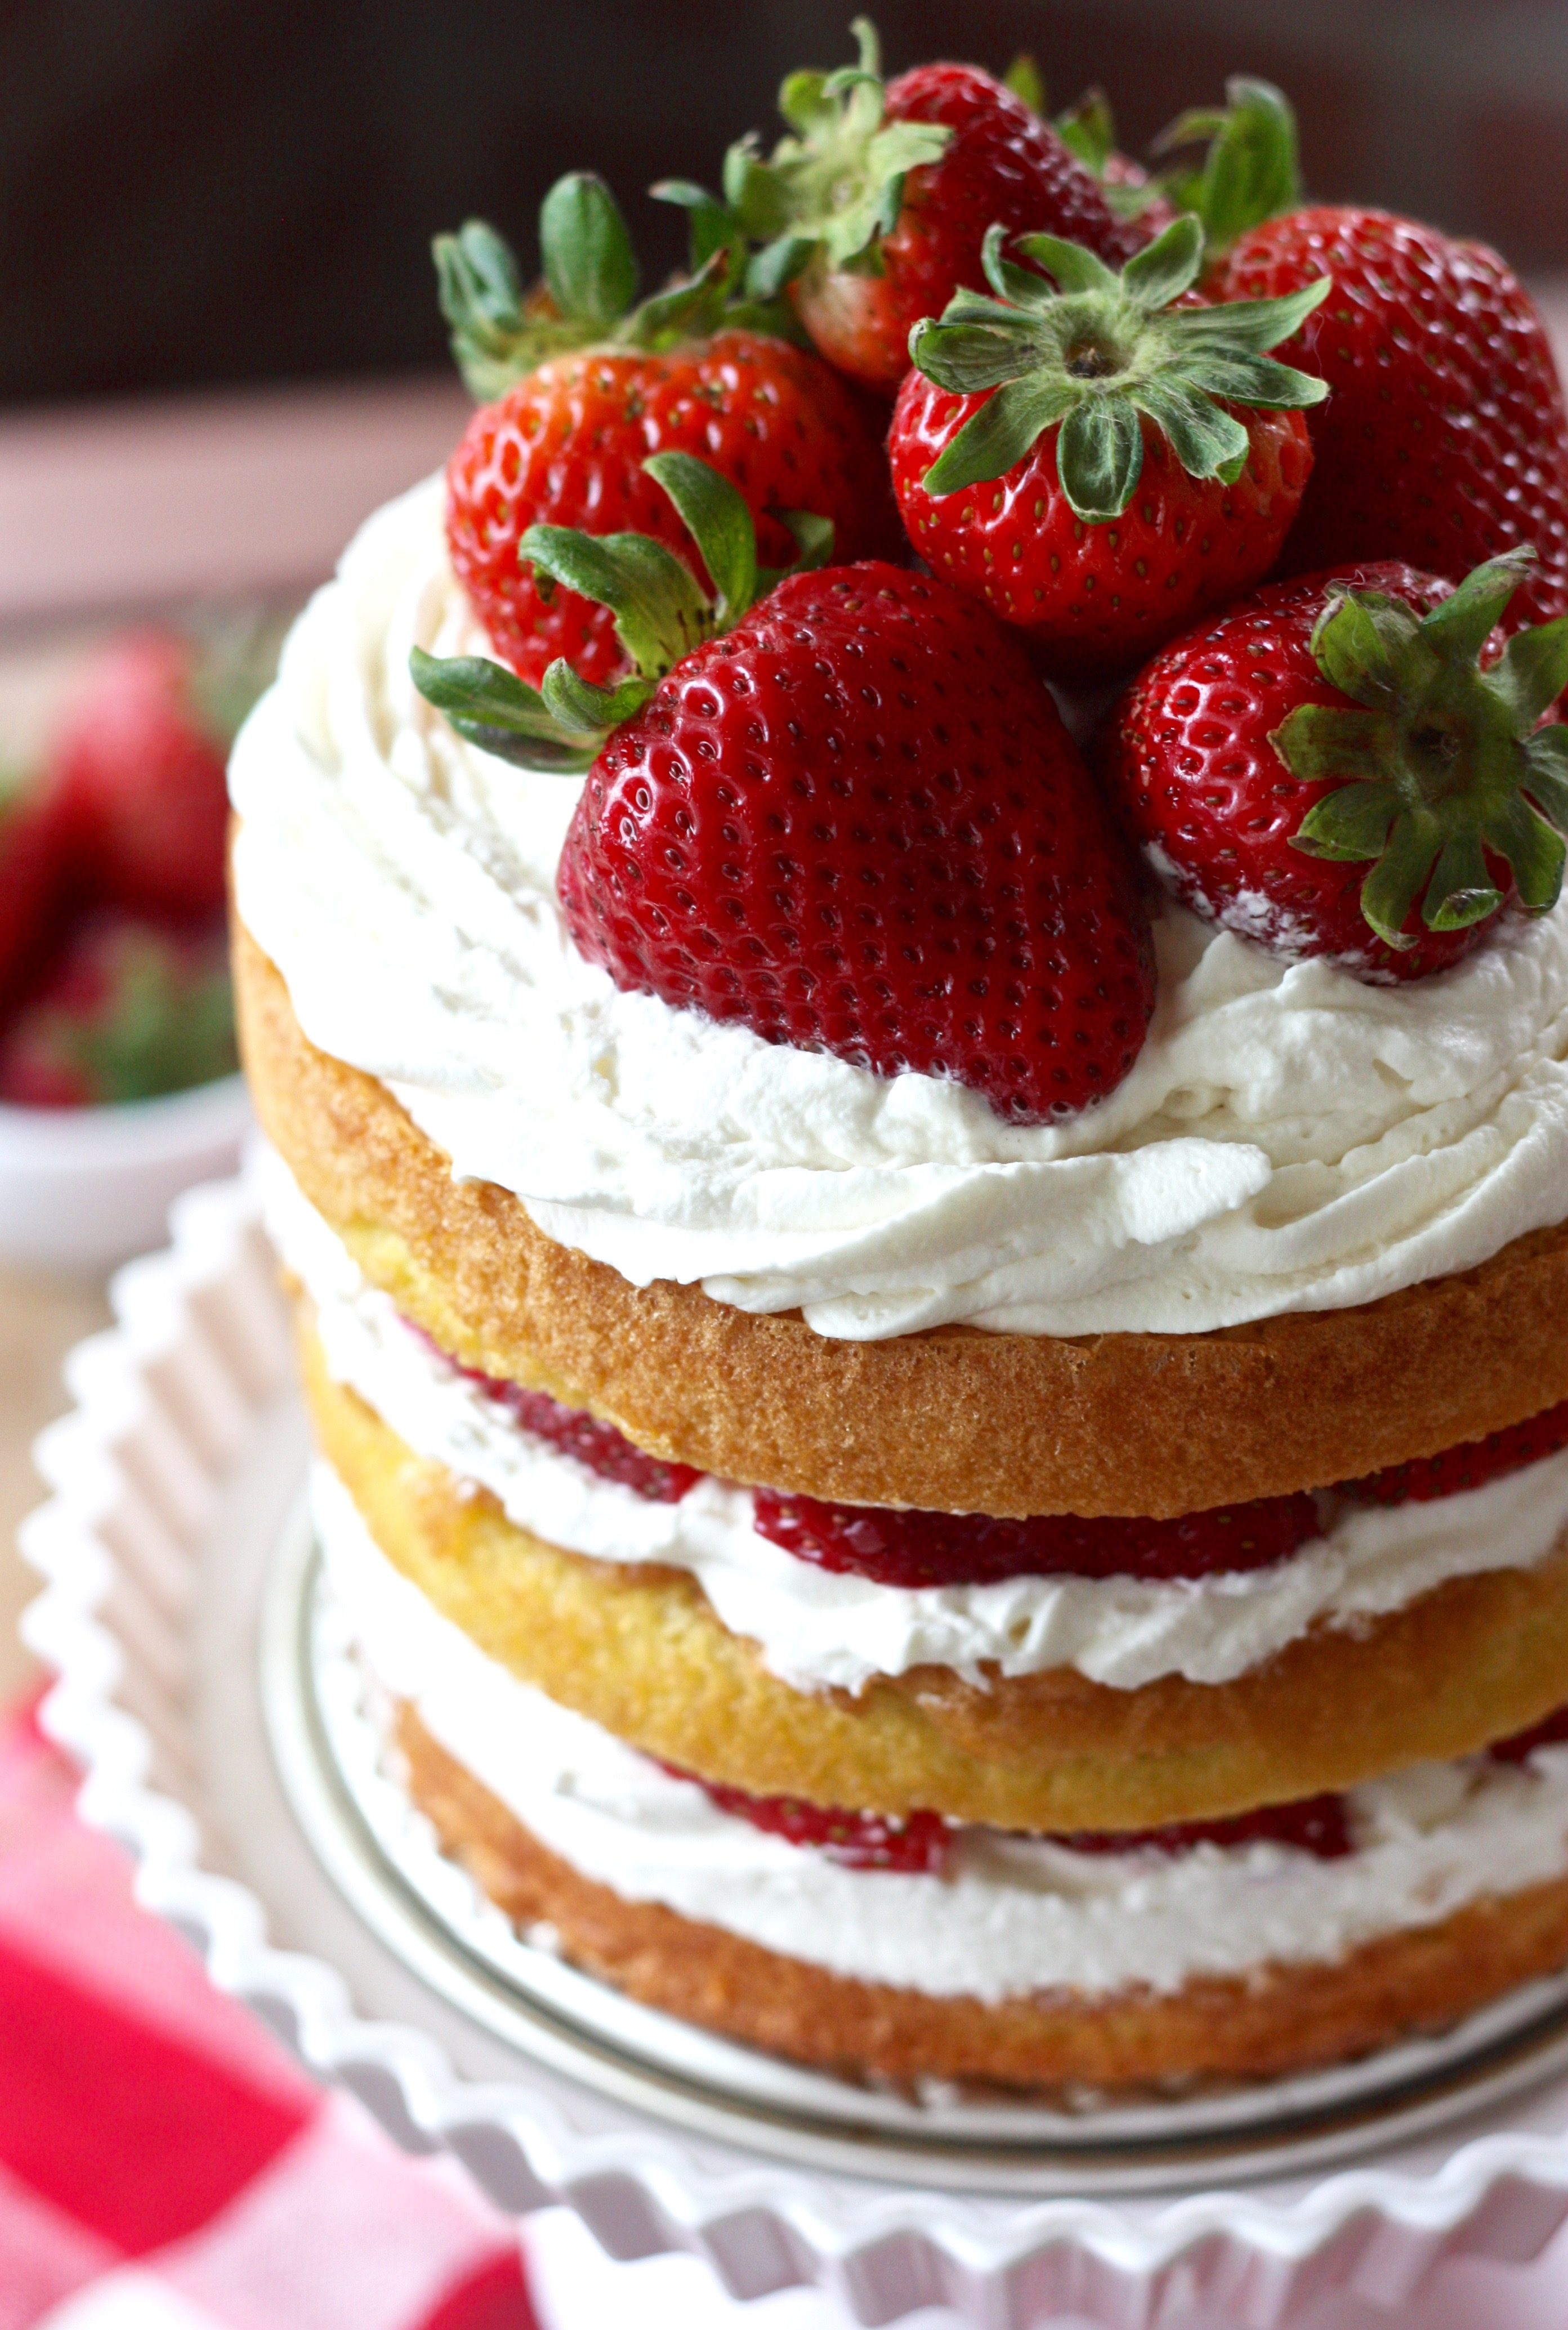 Erica's Sweet Tooth » Strawberry Shortcake Layer Cake